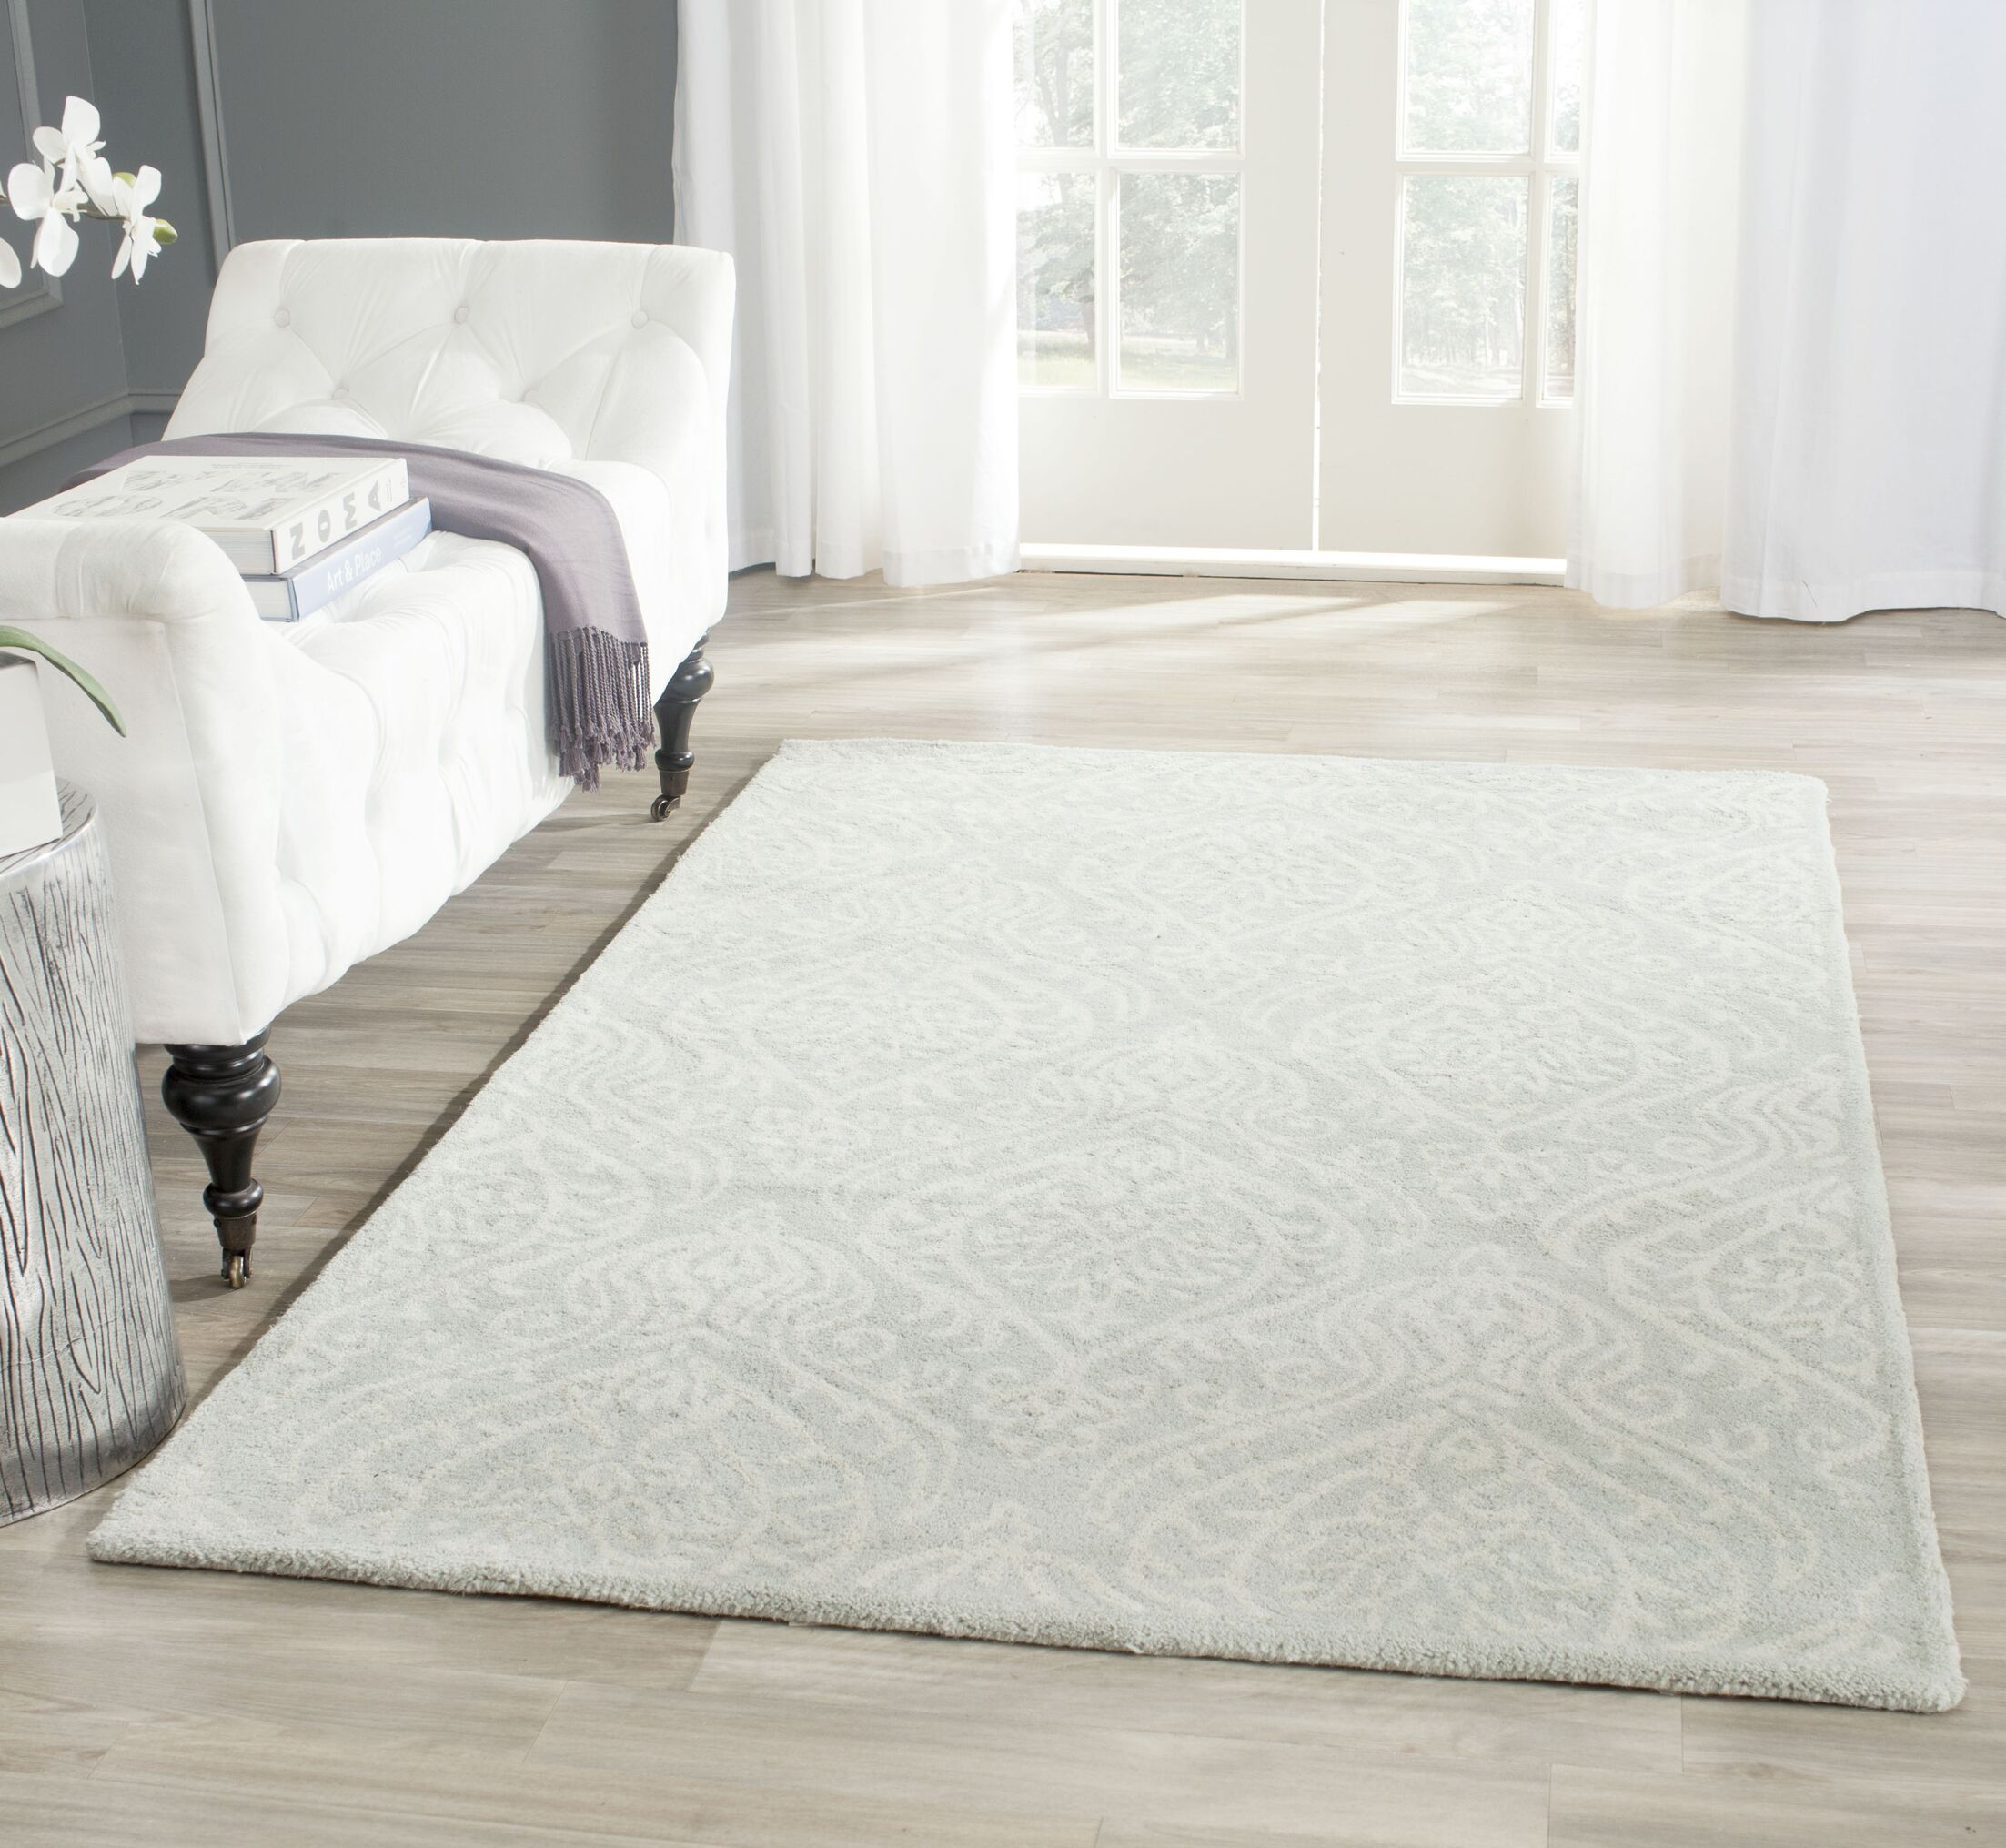 Mcguire Hand-Tufted Wool Silver/Ivory Area Rug Rug Size: Rectangle 8' x 10'